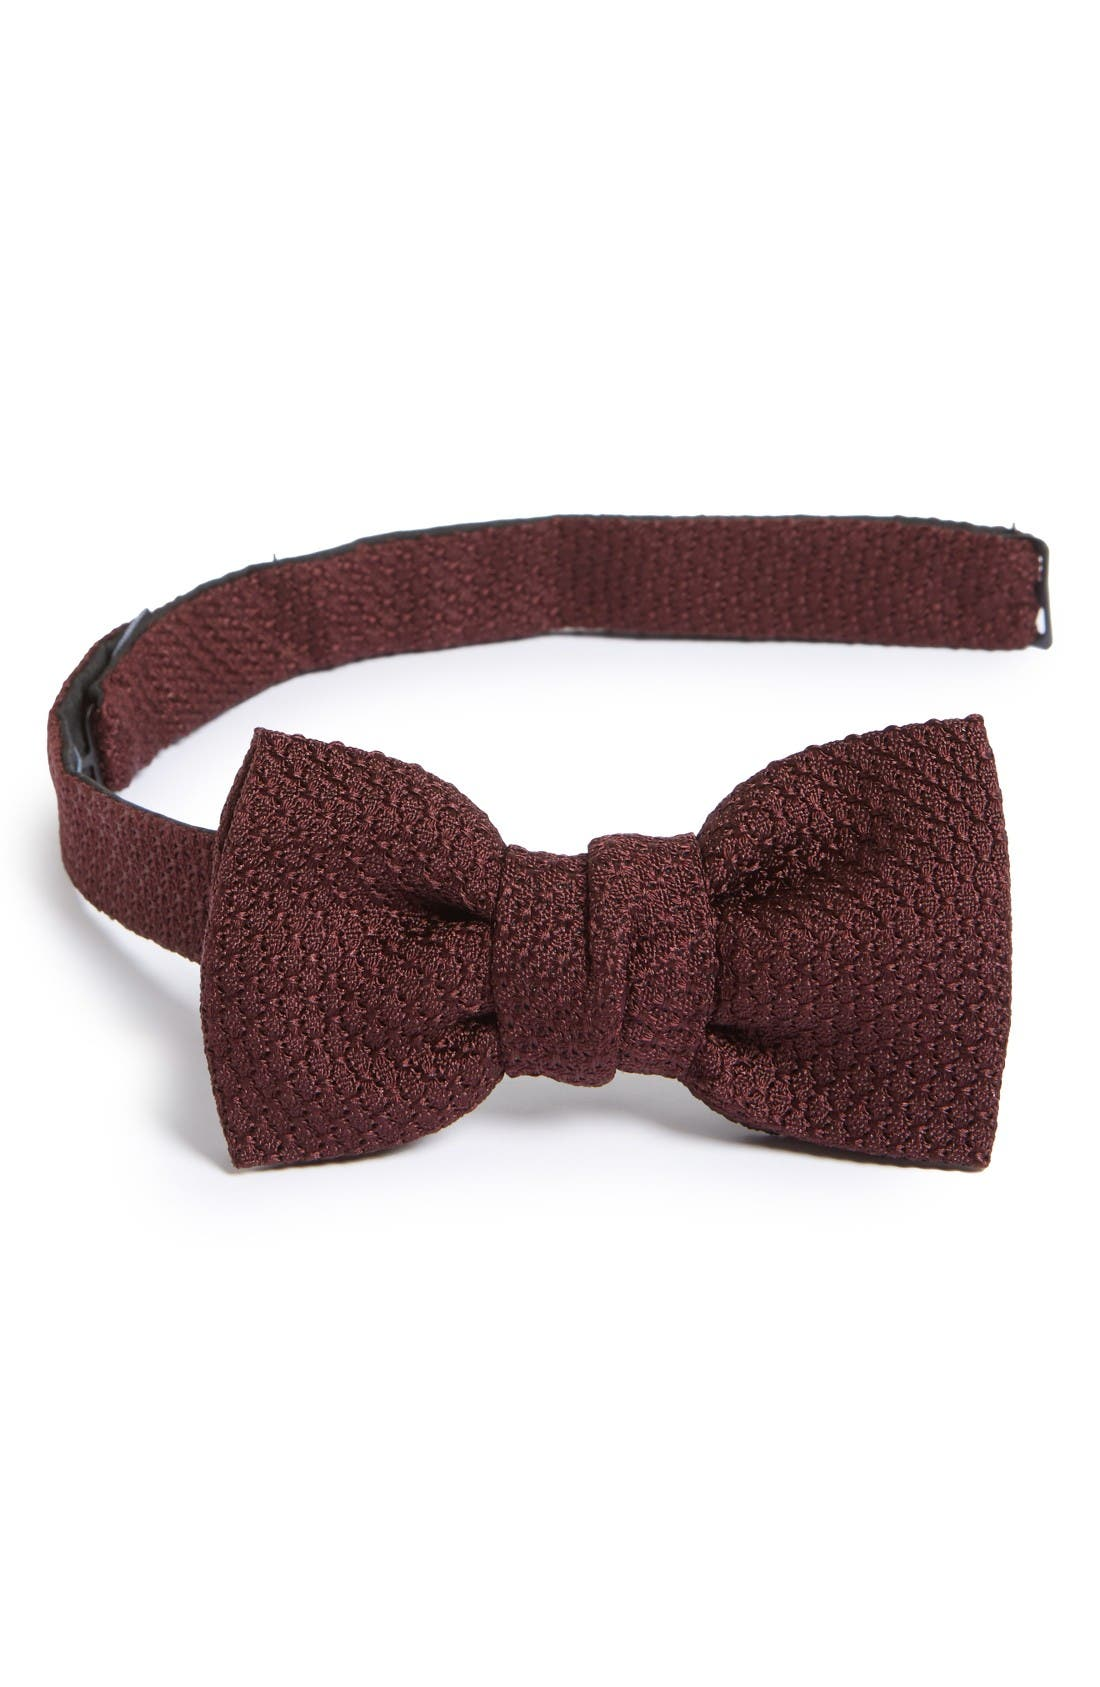 Alternate Image 1 Selected - Lanvin New Classic Texture Knit Silk Bow Tie